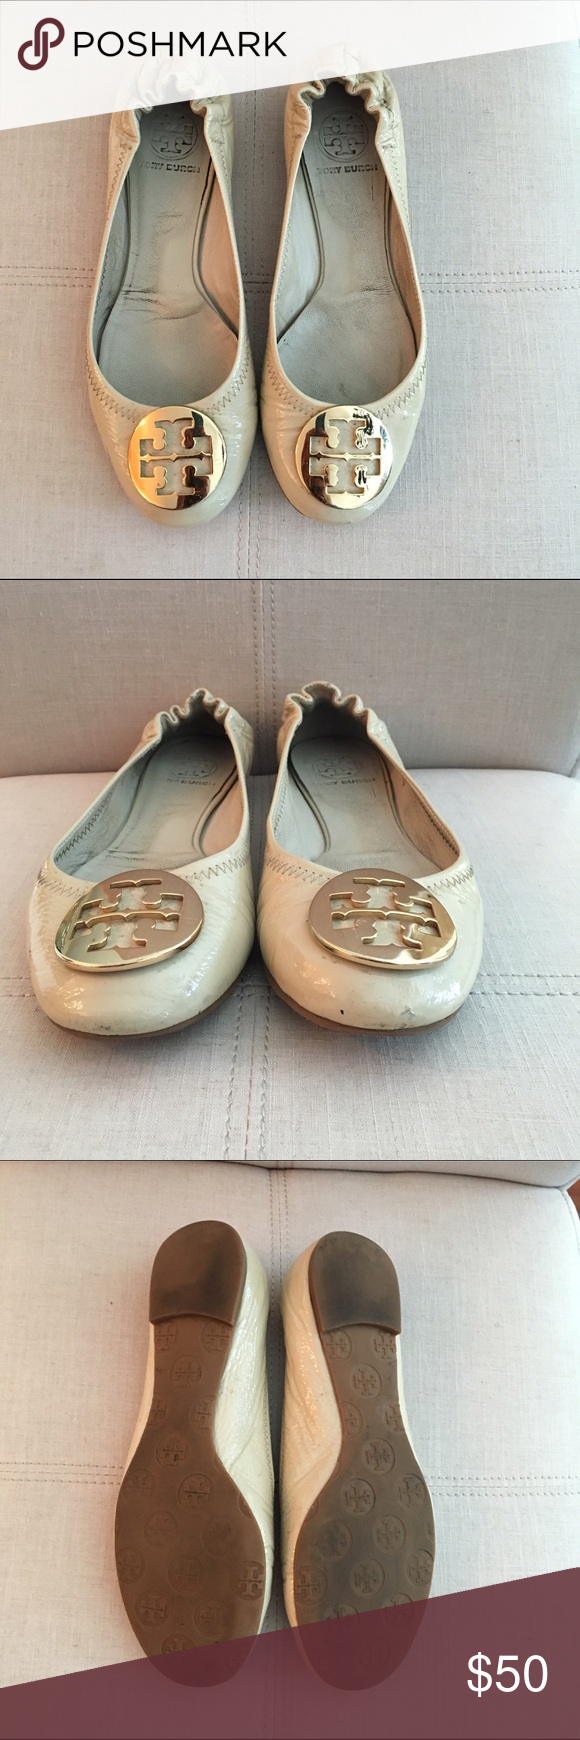 Tory Burch ballet flat - size 7.5 Nude patent leather ballet flats by Tory Burch. Size 7.5. Tory Burch Shoes Flats & Loafers